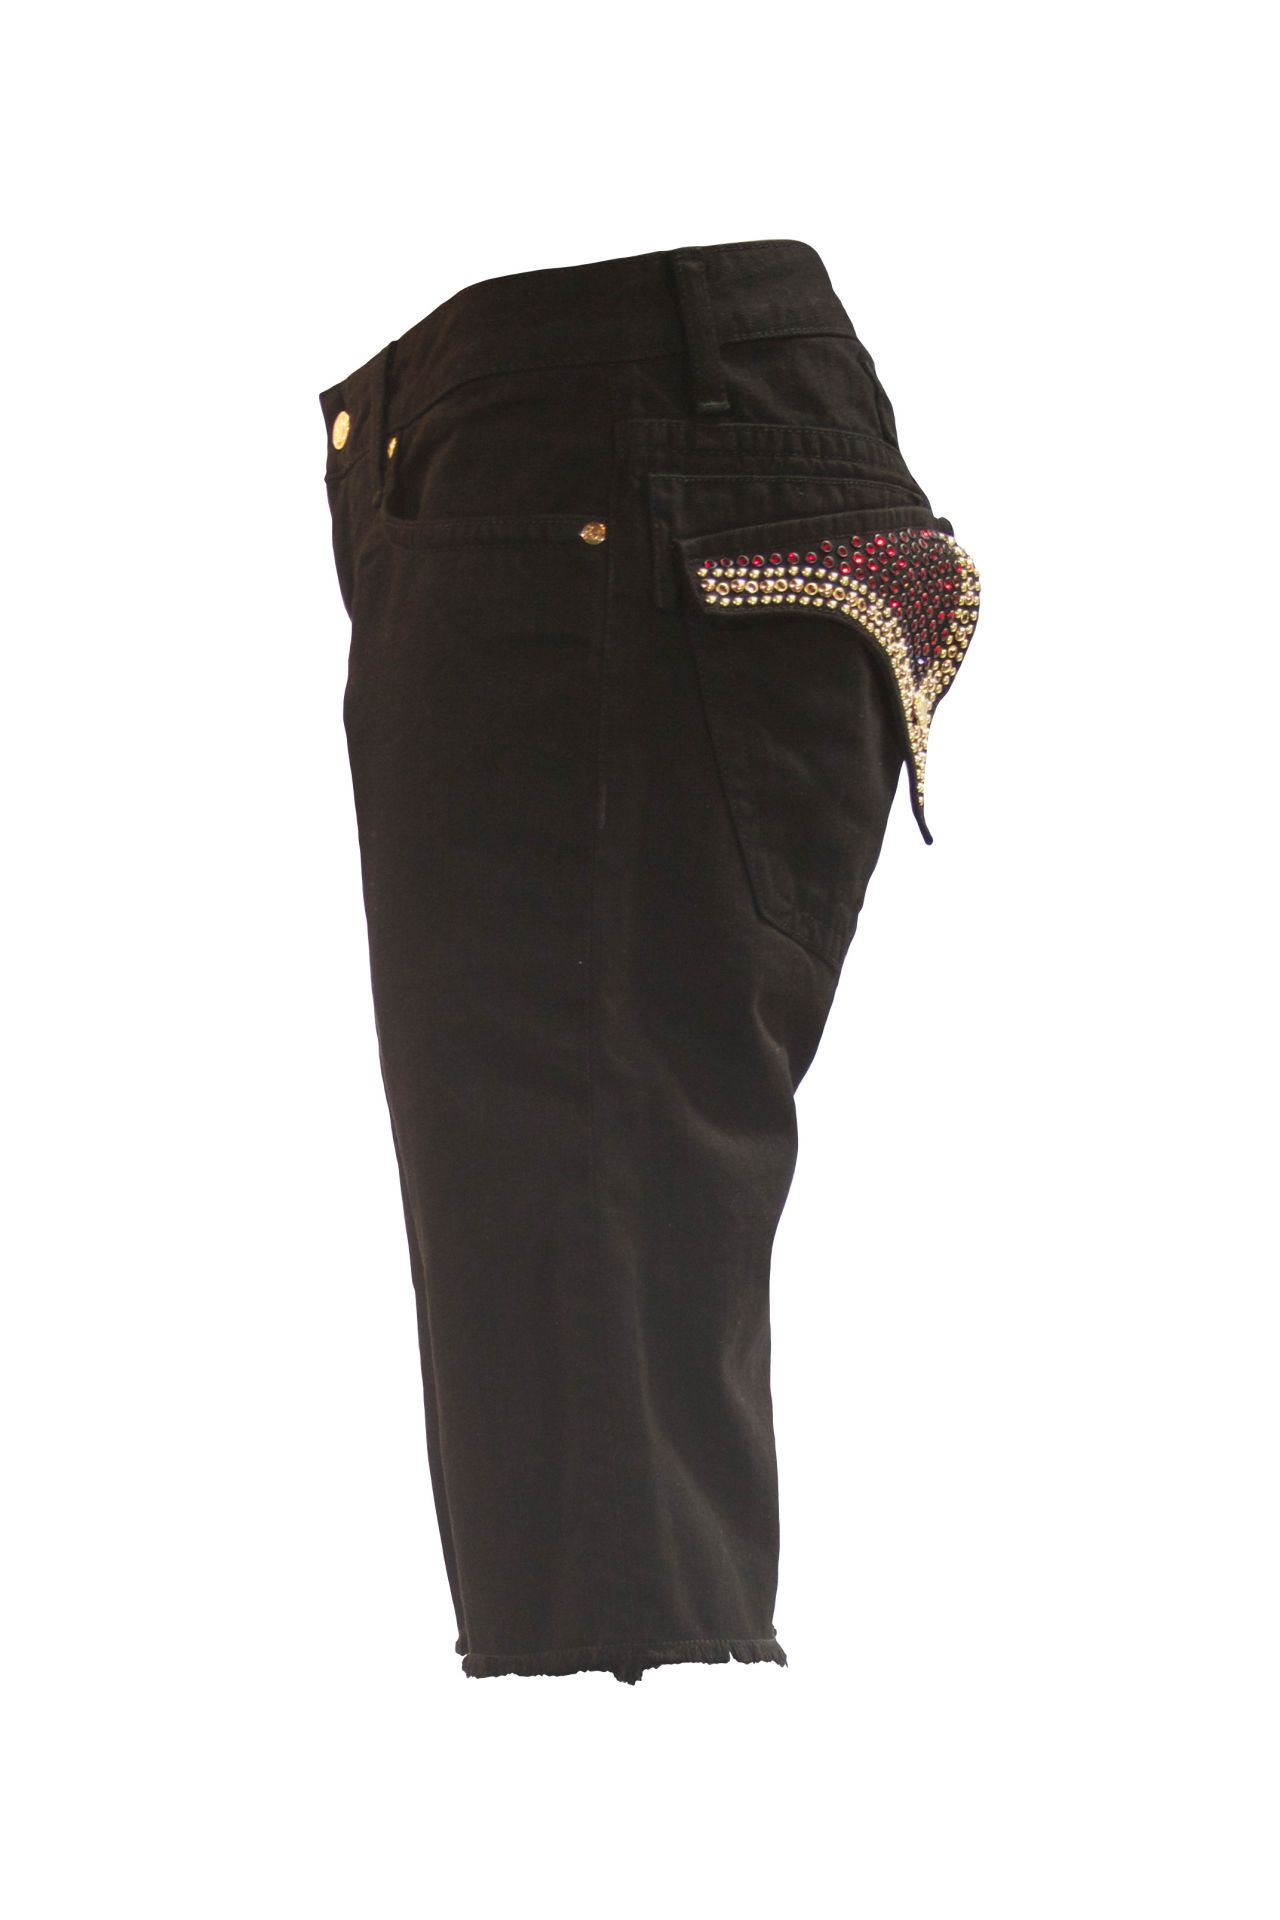 LONG FLAP RAW EDGE SHORTS IN PURE BLACK WITH GOLD AND RED SW